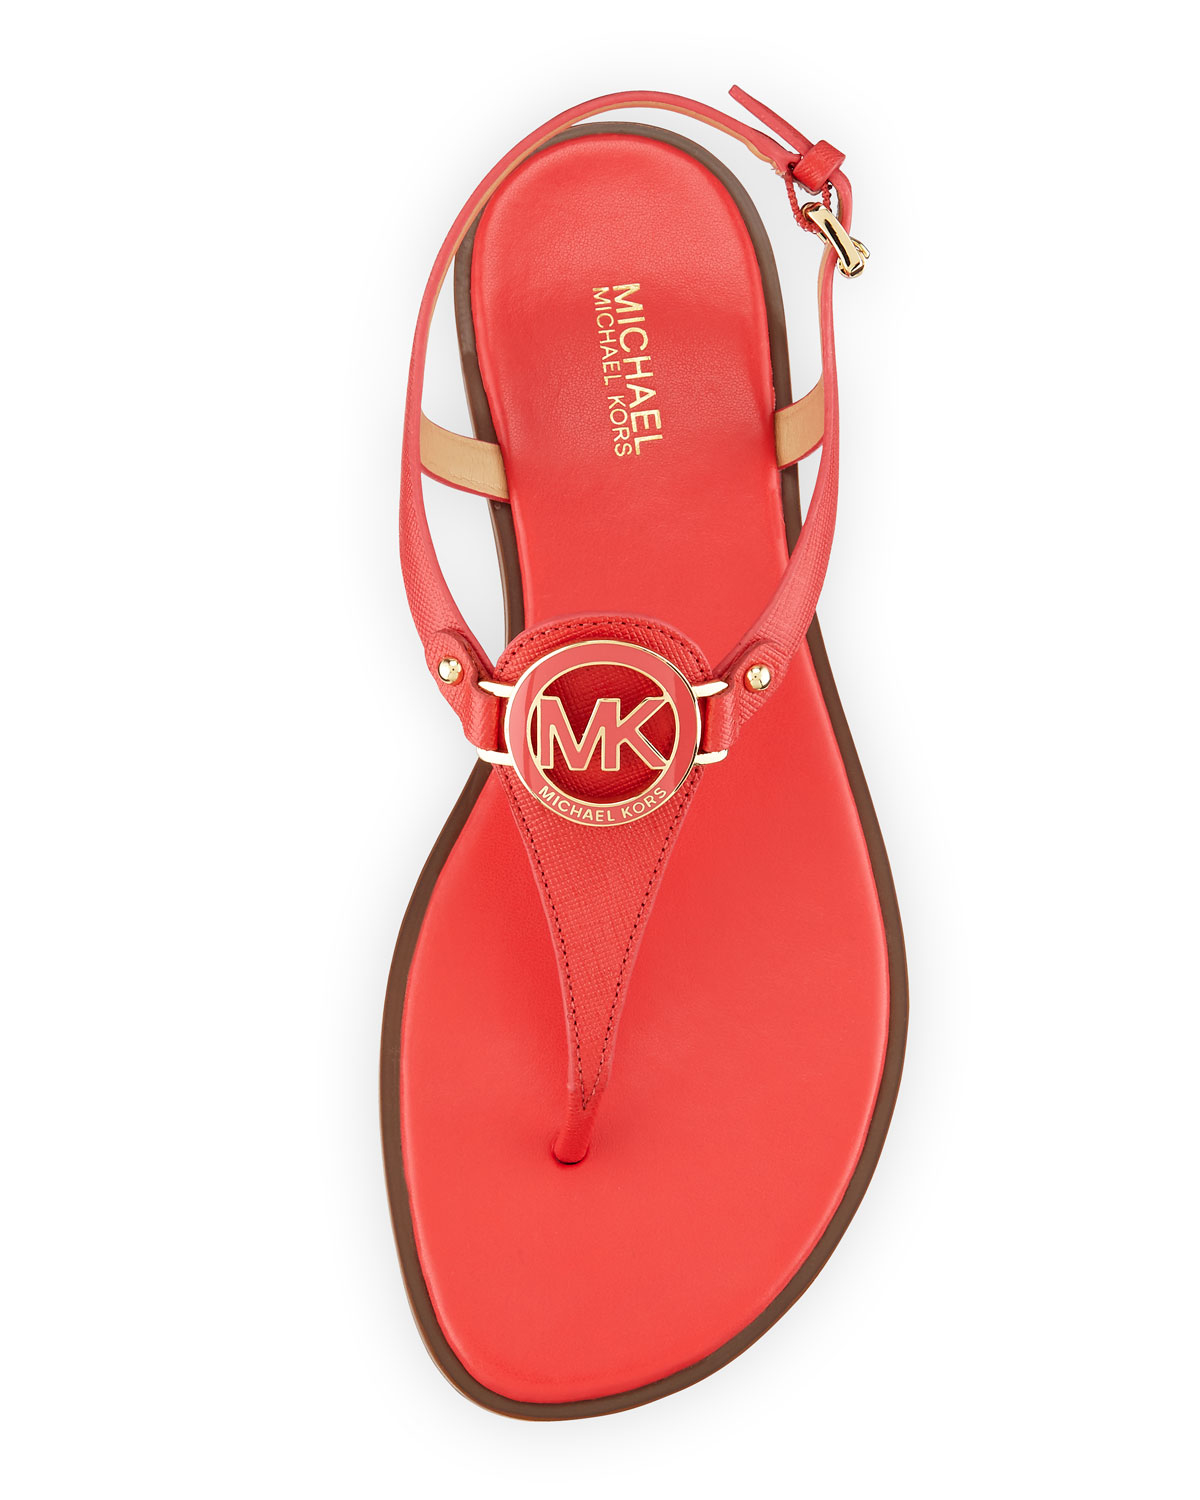 0c59d941c08e Lyst - MICHAEL Michael Kors Lee Leather Flat T-strap Sandal in Red